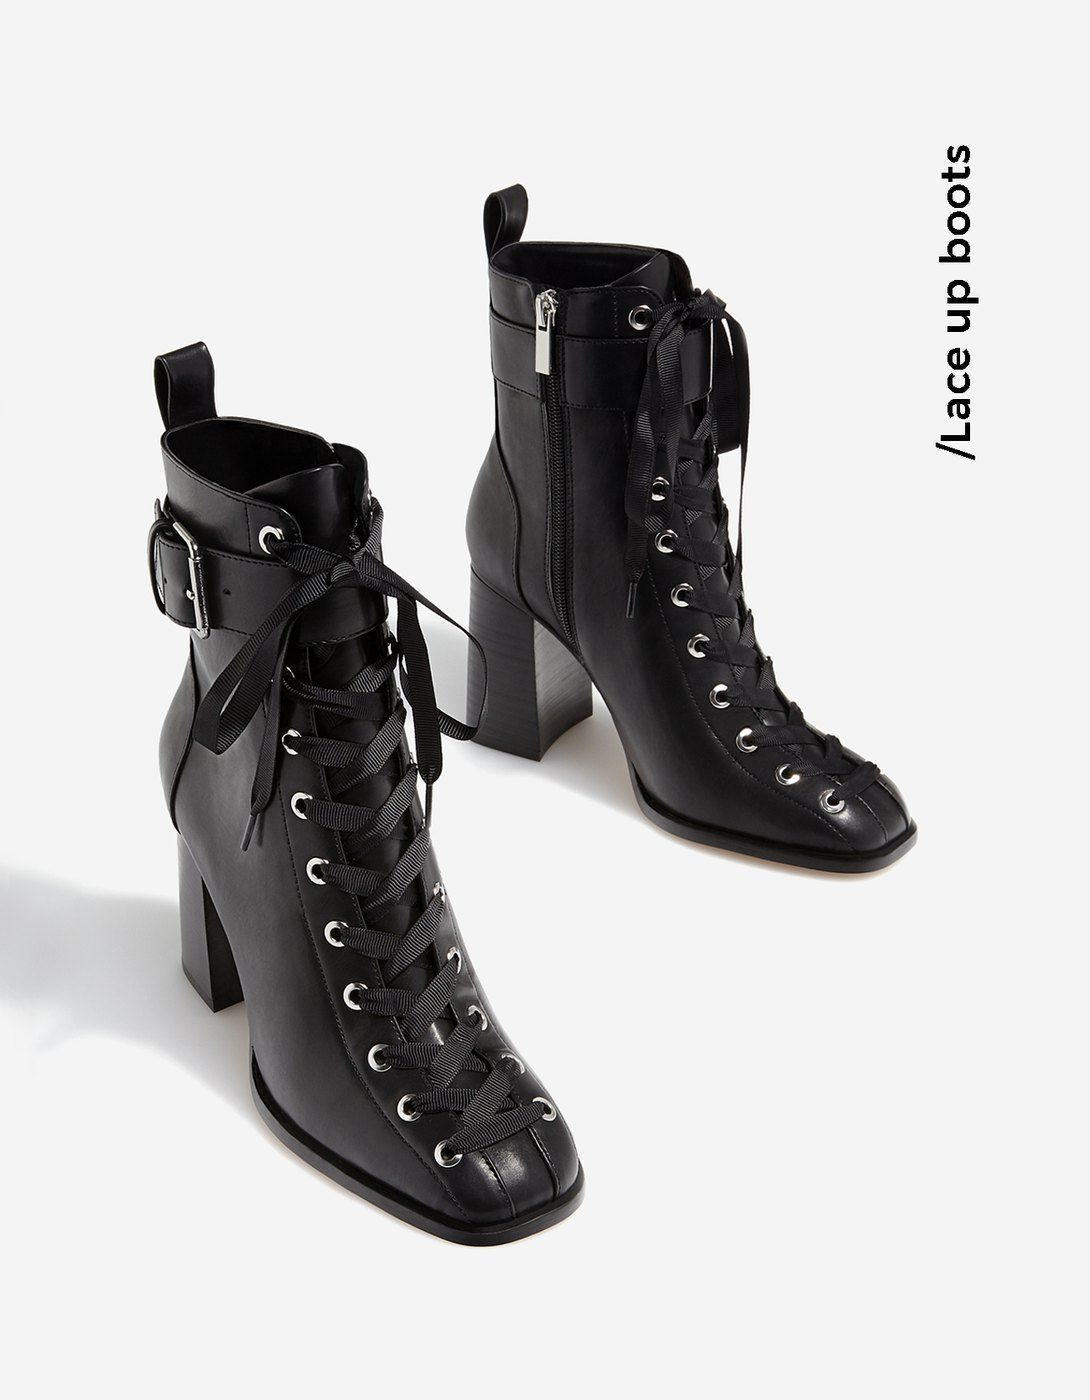 0df4d5c98667 Lace-up high heel ankle boots - Socks